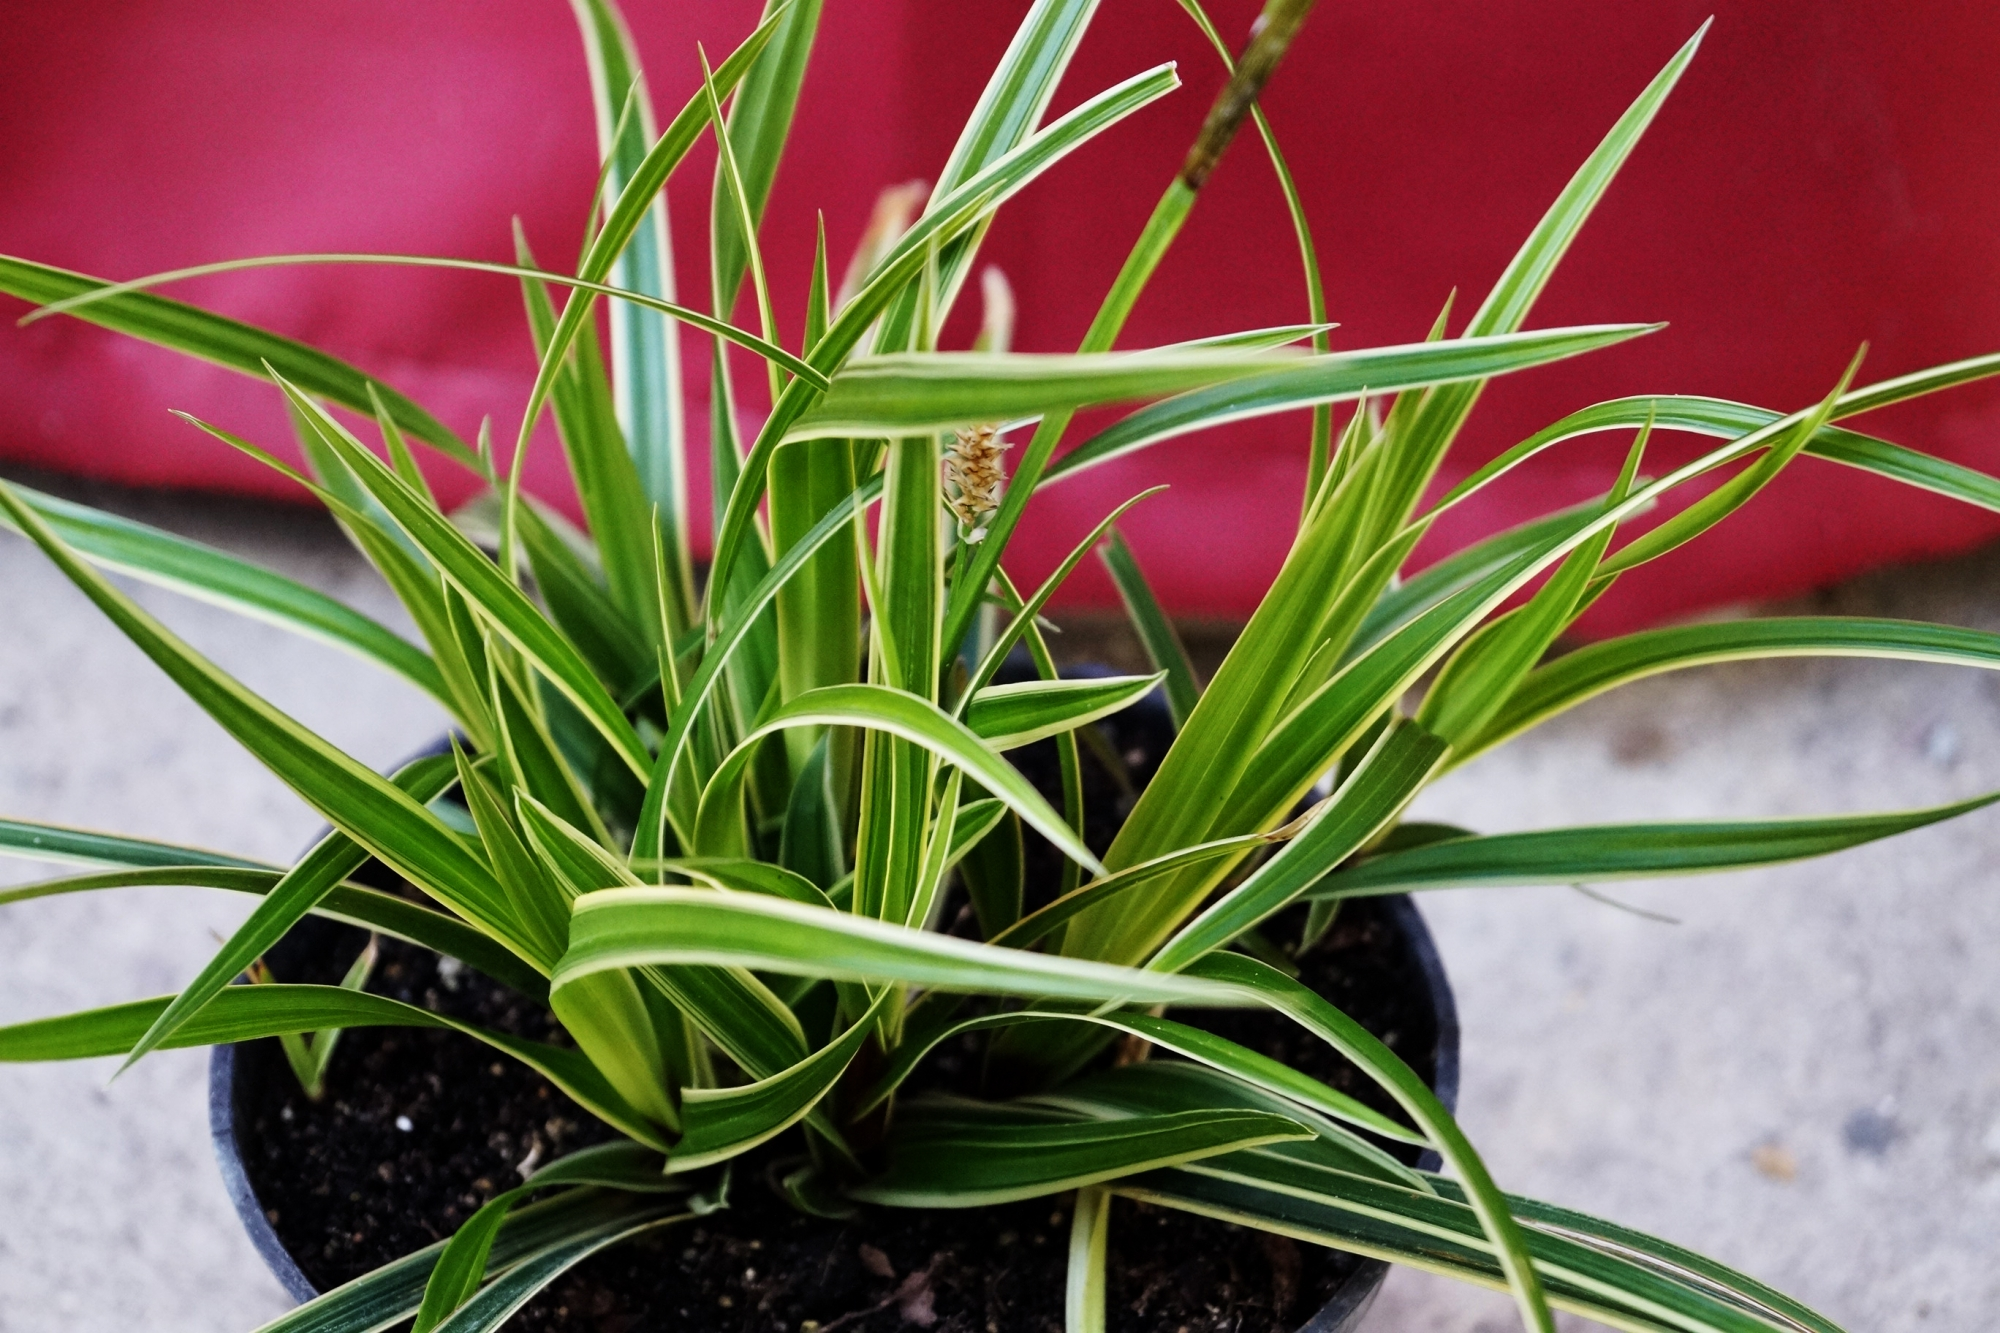 Декоративна вариегатна трева (Decorative variegated grass)